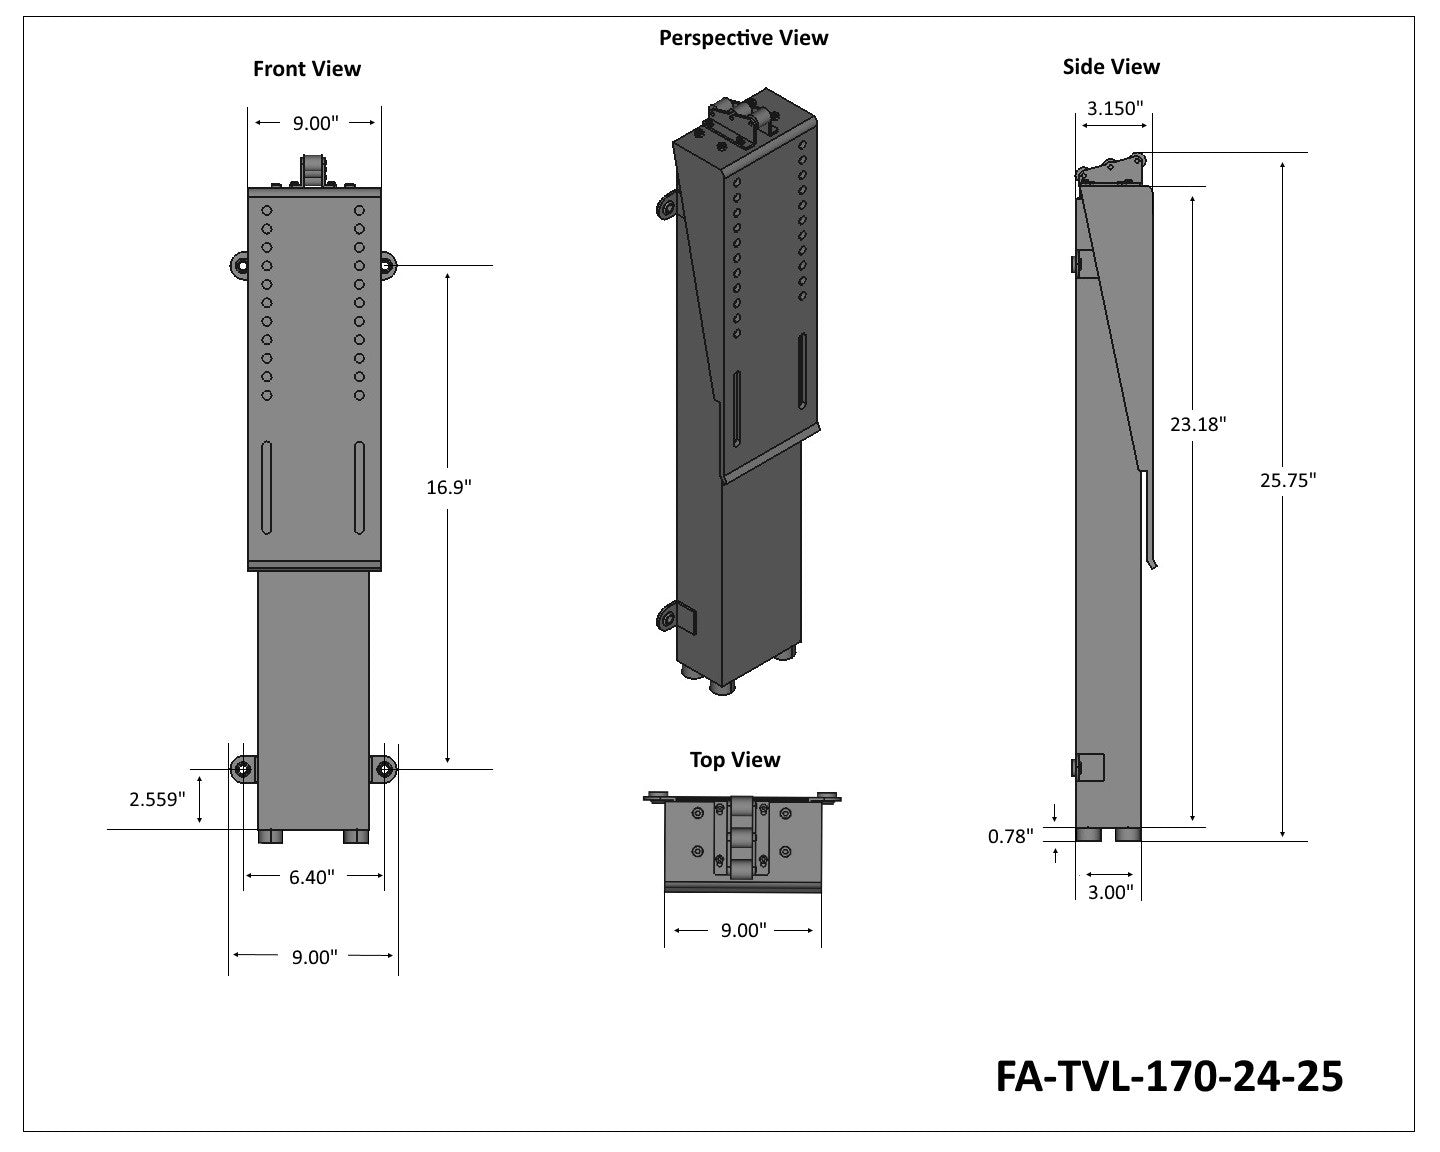 FA-TVL-170-24-25 Tech Drawing